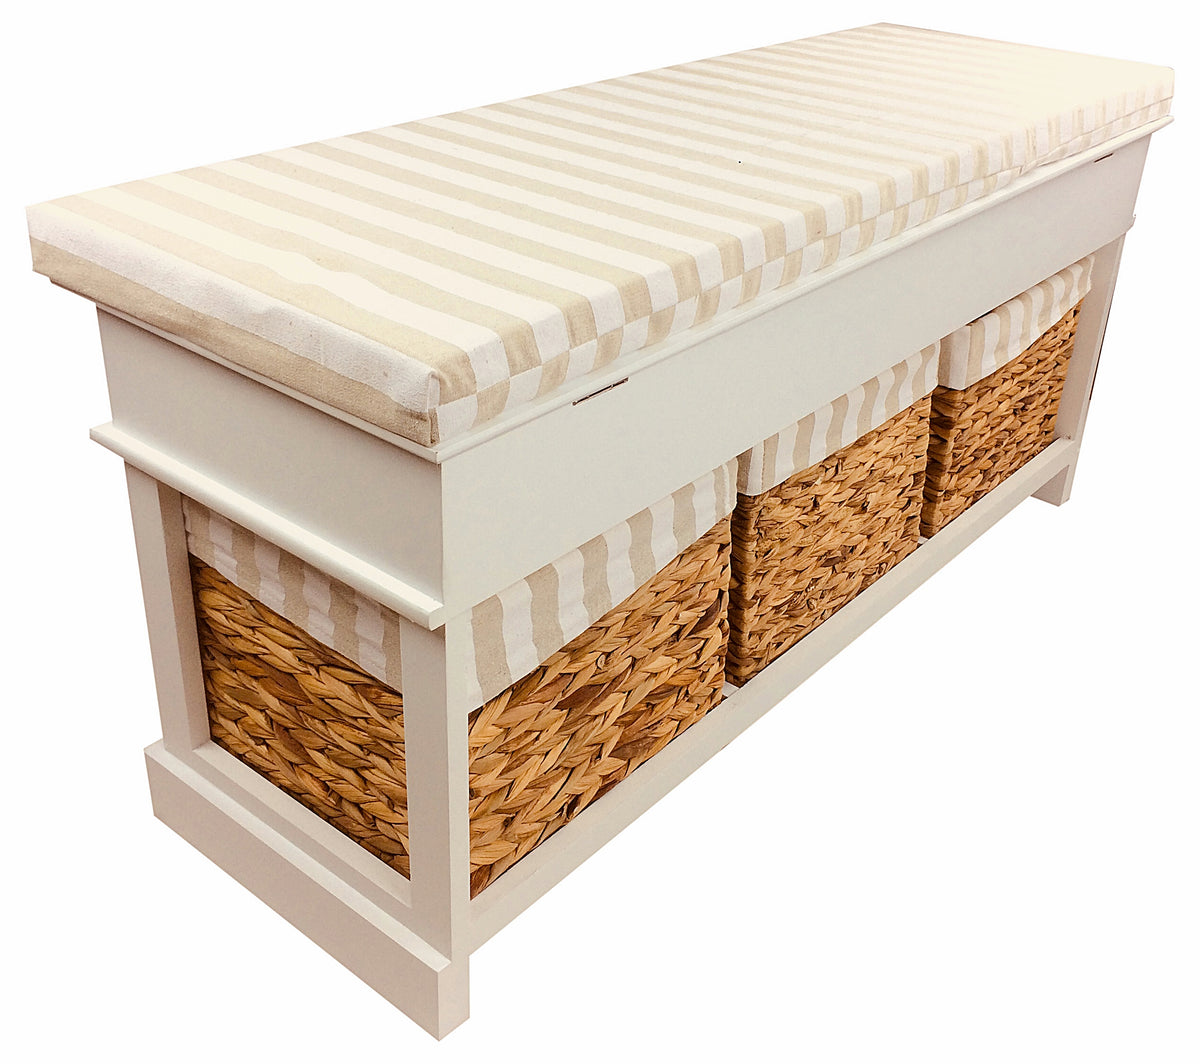 Wooden Storage Bench with 3 Baskets & Cushion - Seashore No4